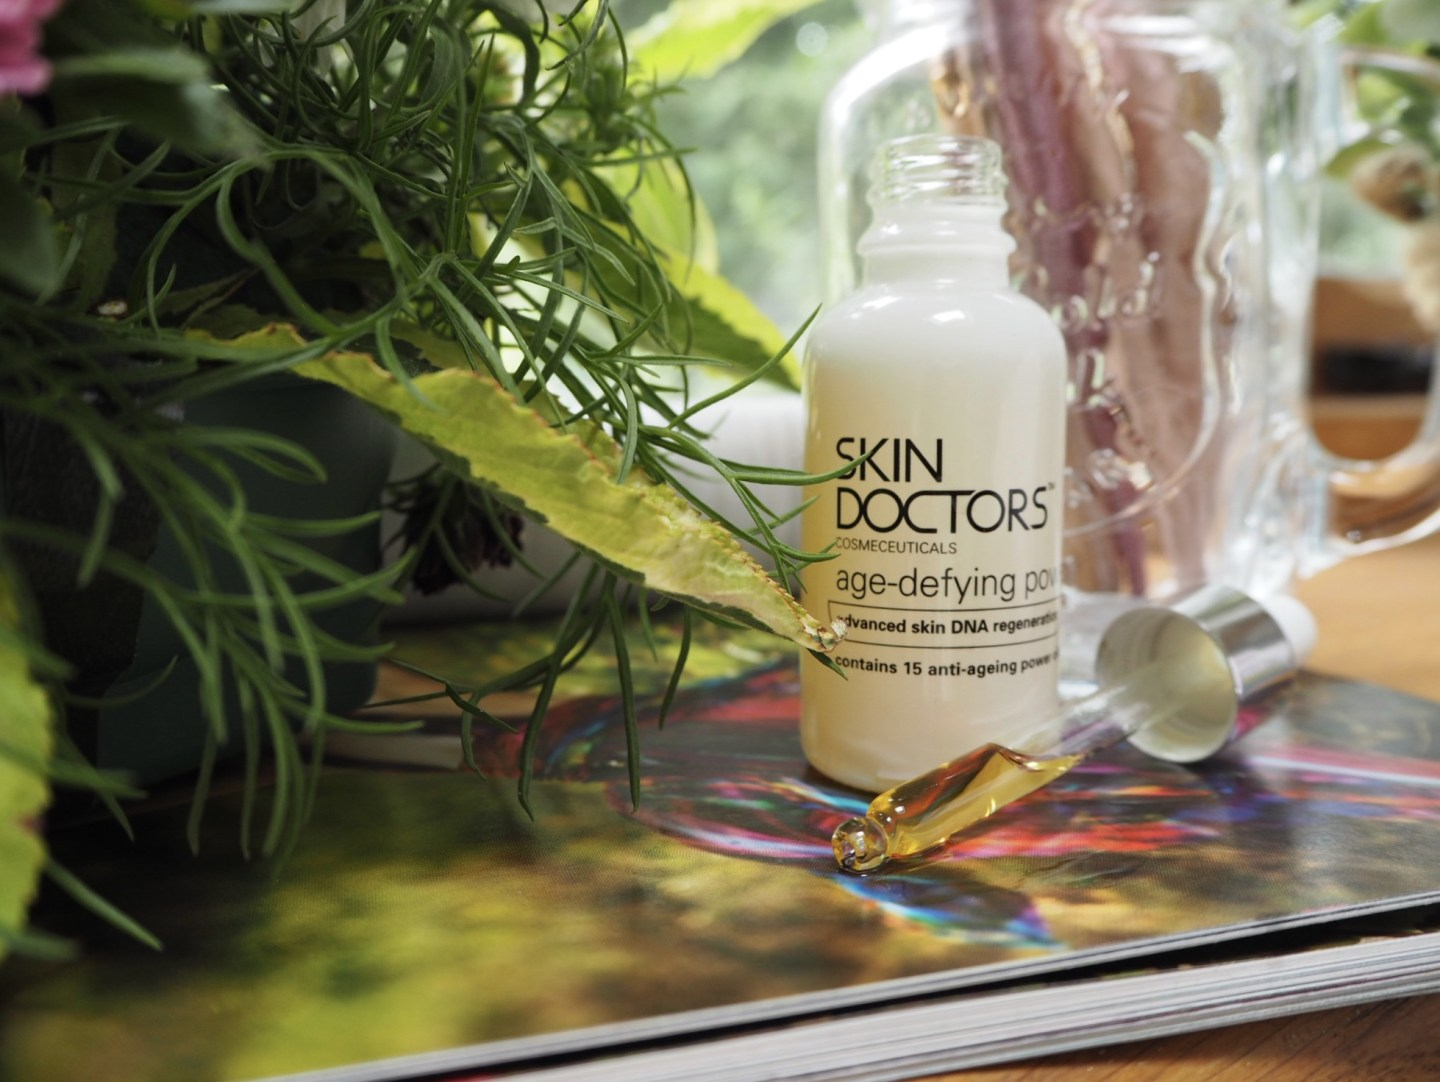 Defy your age with Skin Doctors Age-defying Power Oil